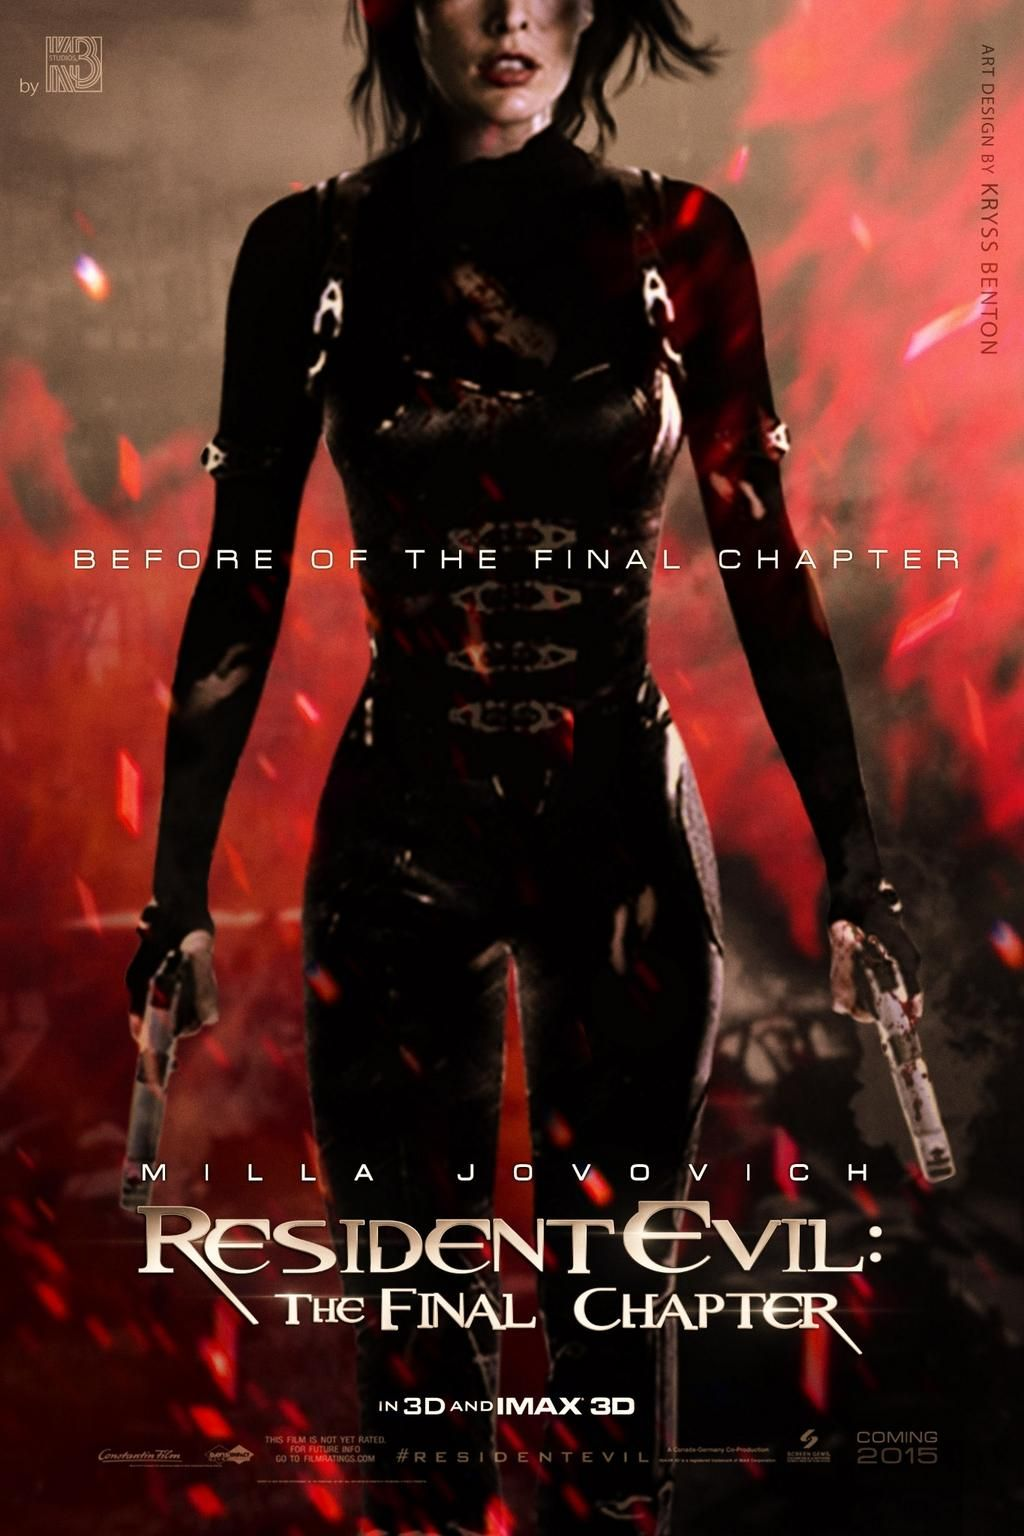 Resident Evil Chapitre Final Streaming : resident, chapitre, final, streaming, Resident, Final, Chapter, (2016), Stars:, Wentworth, Miller,, Milla, Jovovich,, Sienna, Guillory, Movie,, Alice